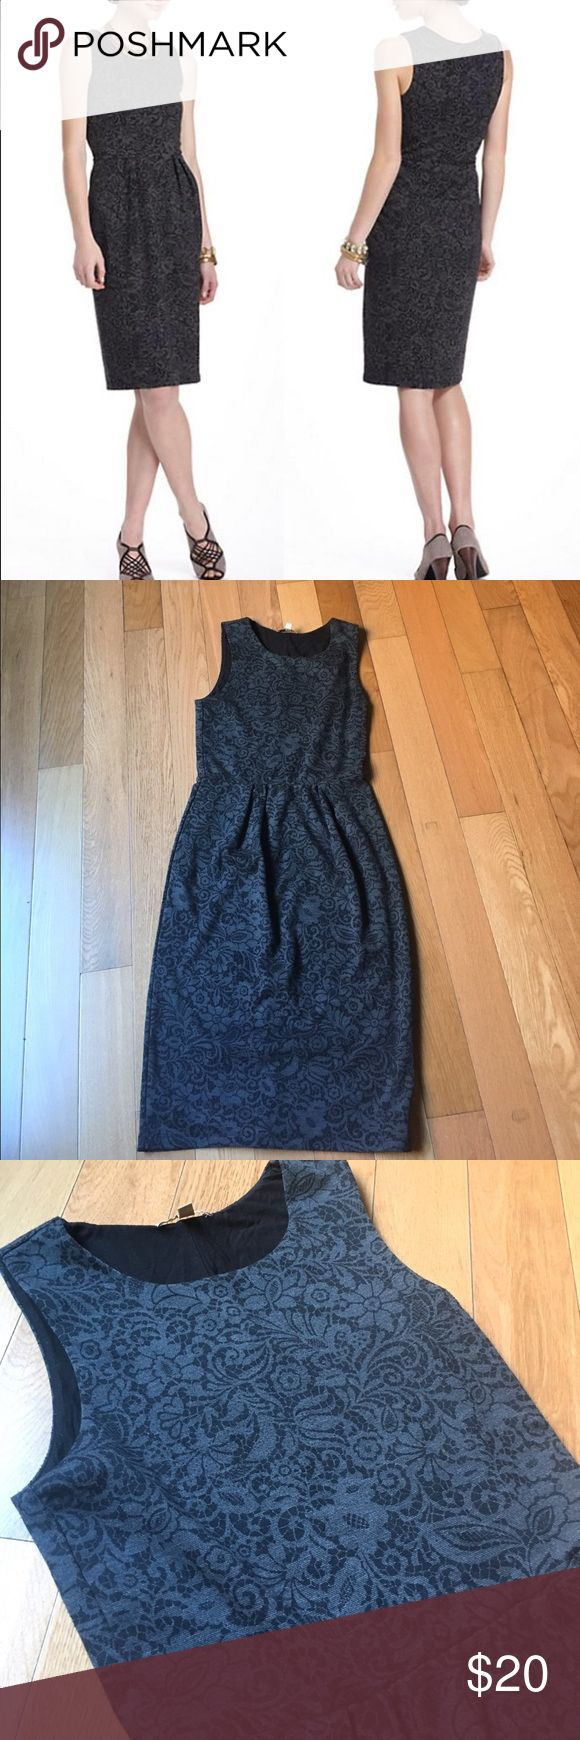 ✨SALE Anthropologie Engagements Dress by Bordeaux Good used condition, very light pilling on the back, not noticeable but I tried to take a picture Anthropologie Dresses